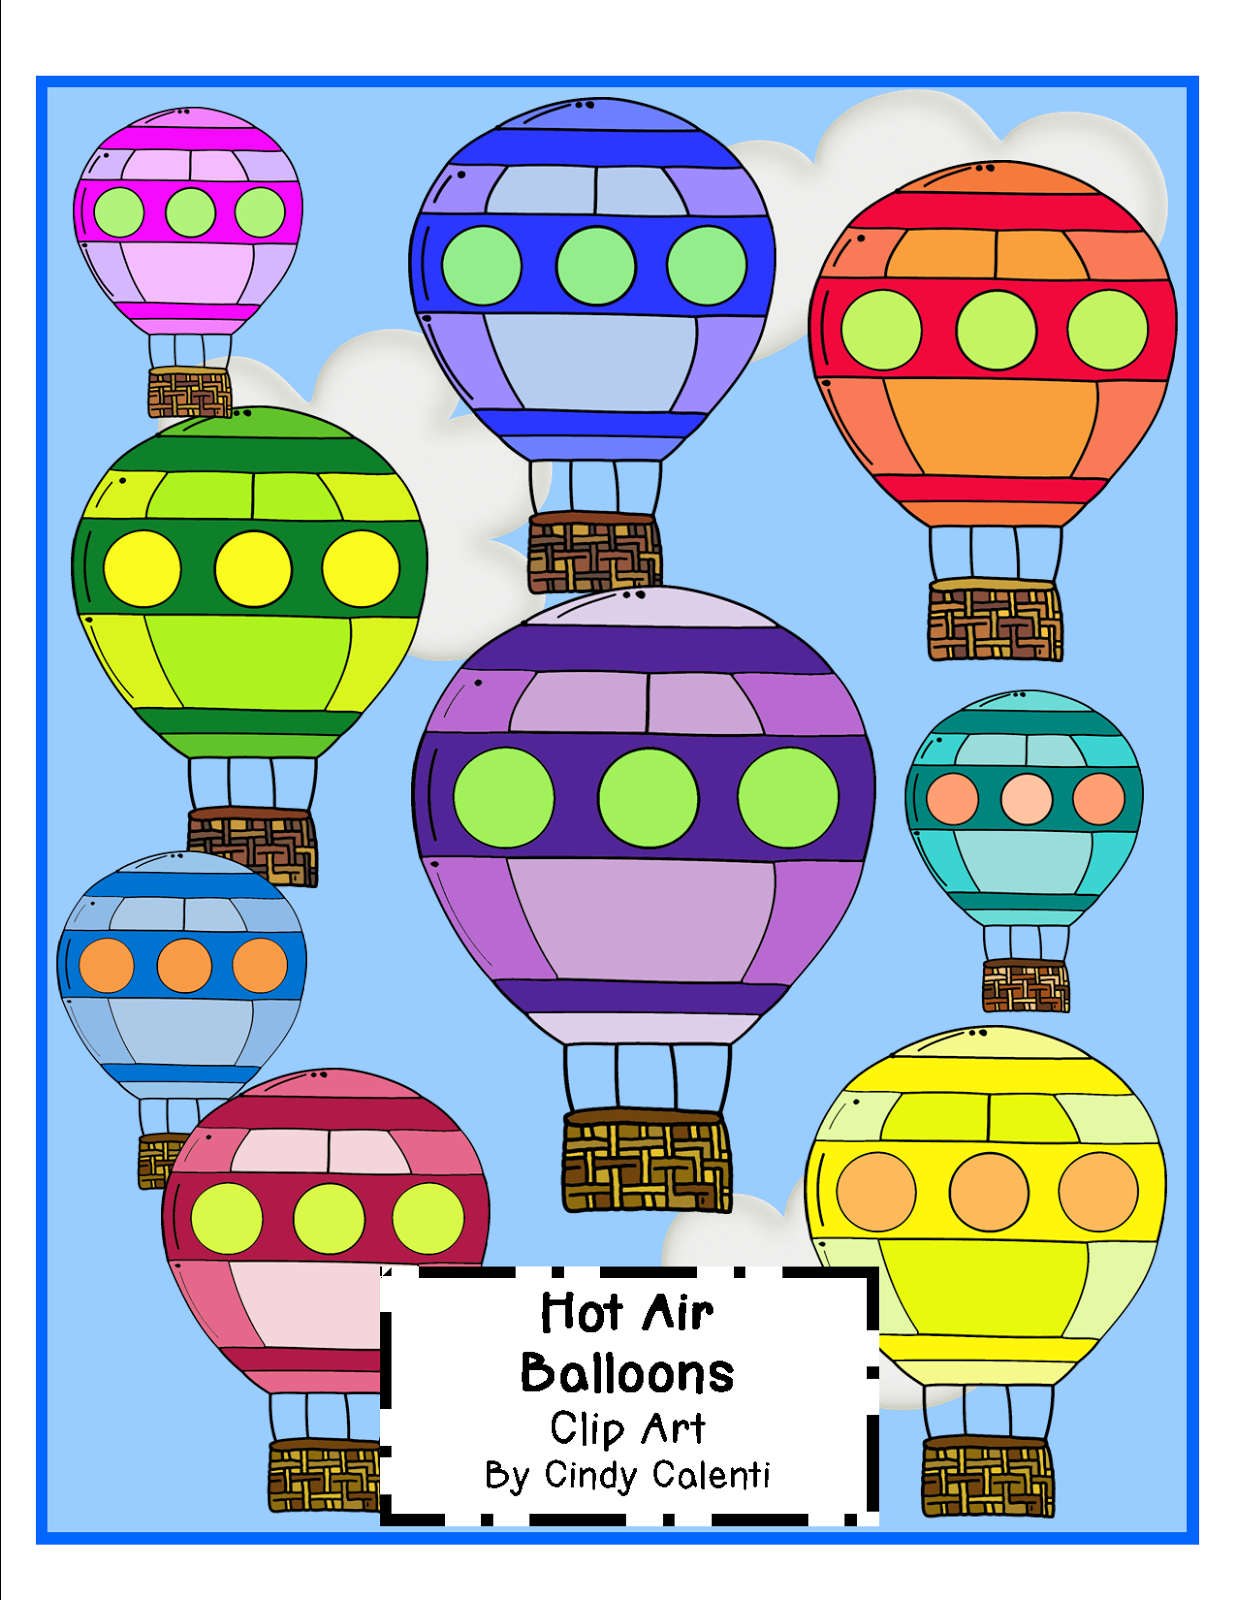 http://grannygoestoschool.blogspot.com/2014/08/up-up-and-away-hot-air-balloon-resources.html